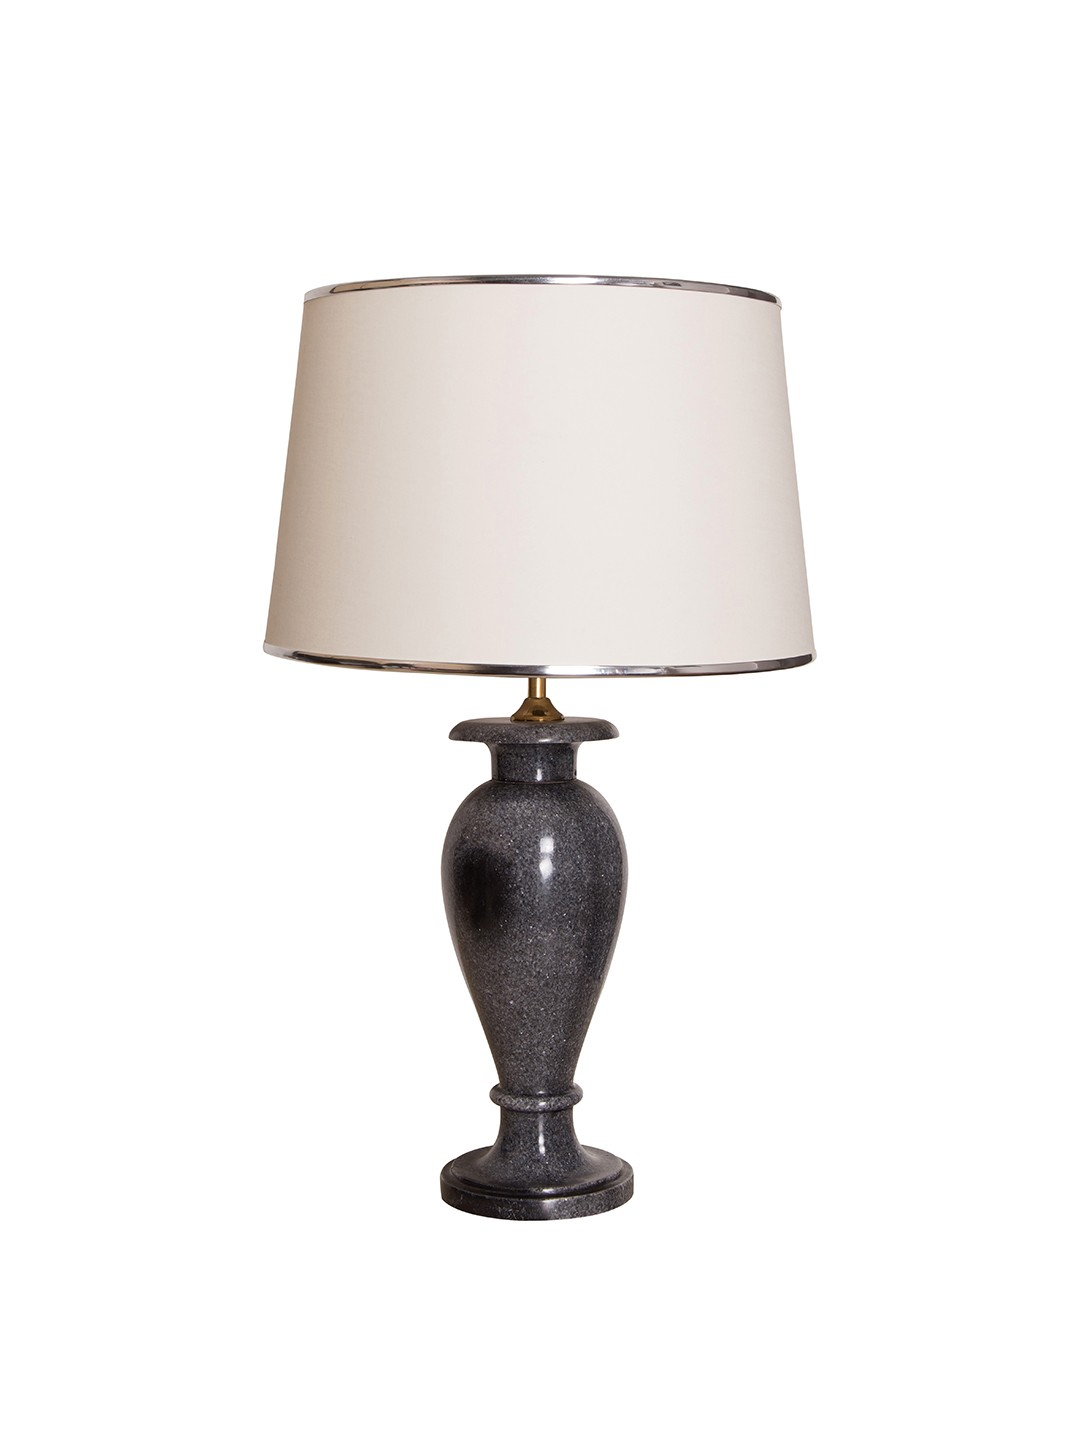 Charcoal Marble Vase Table Lamp With White Fabric Shade